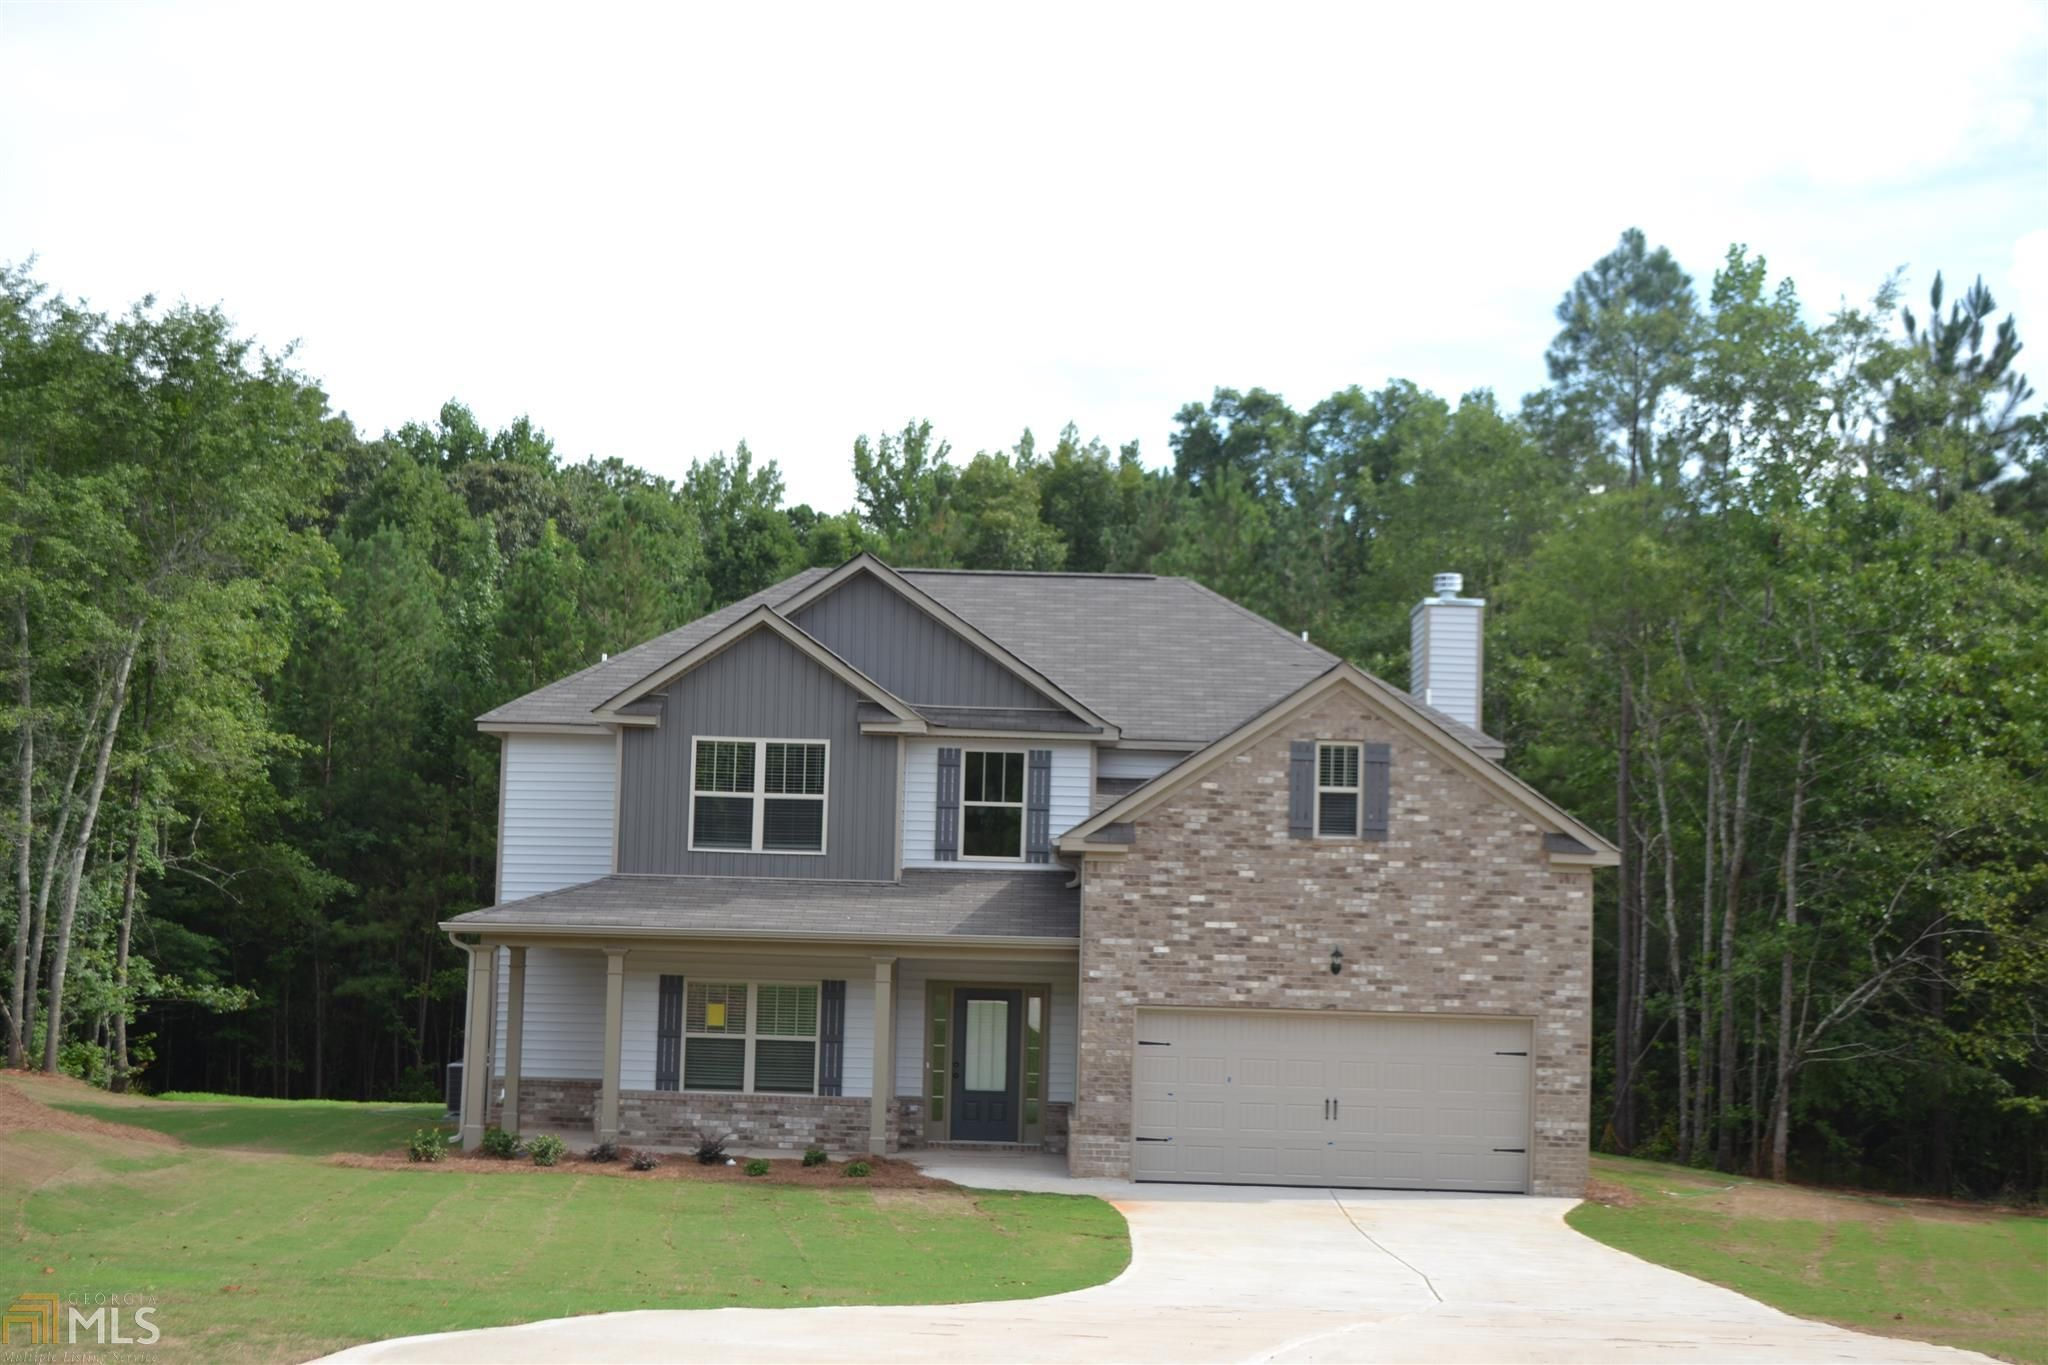 Waterford Dr Lot 80